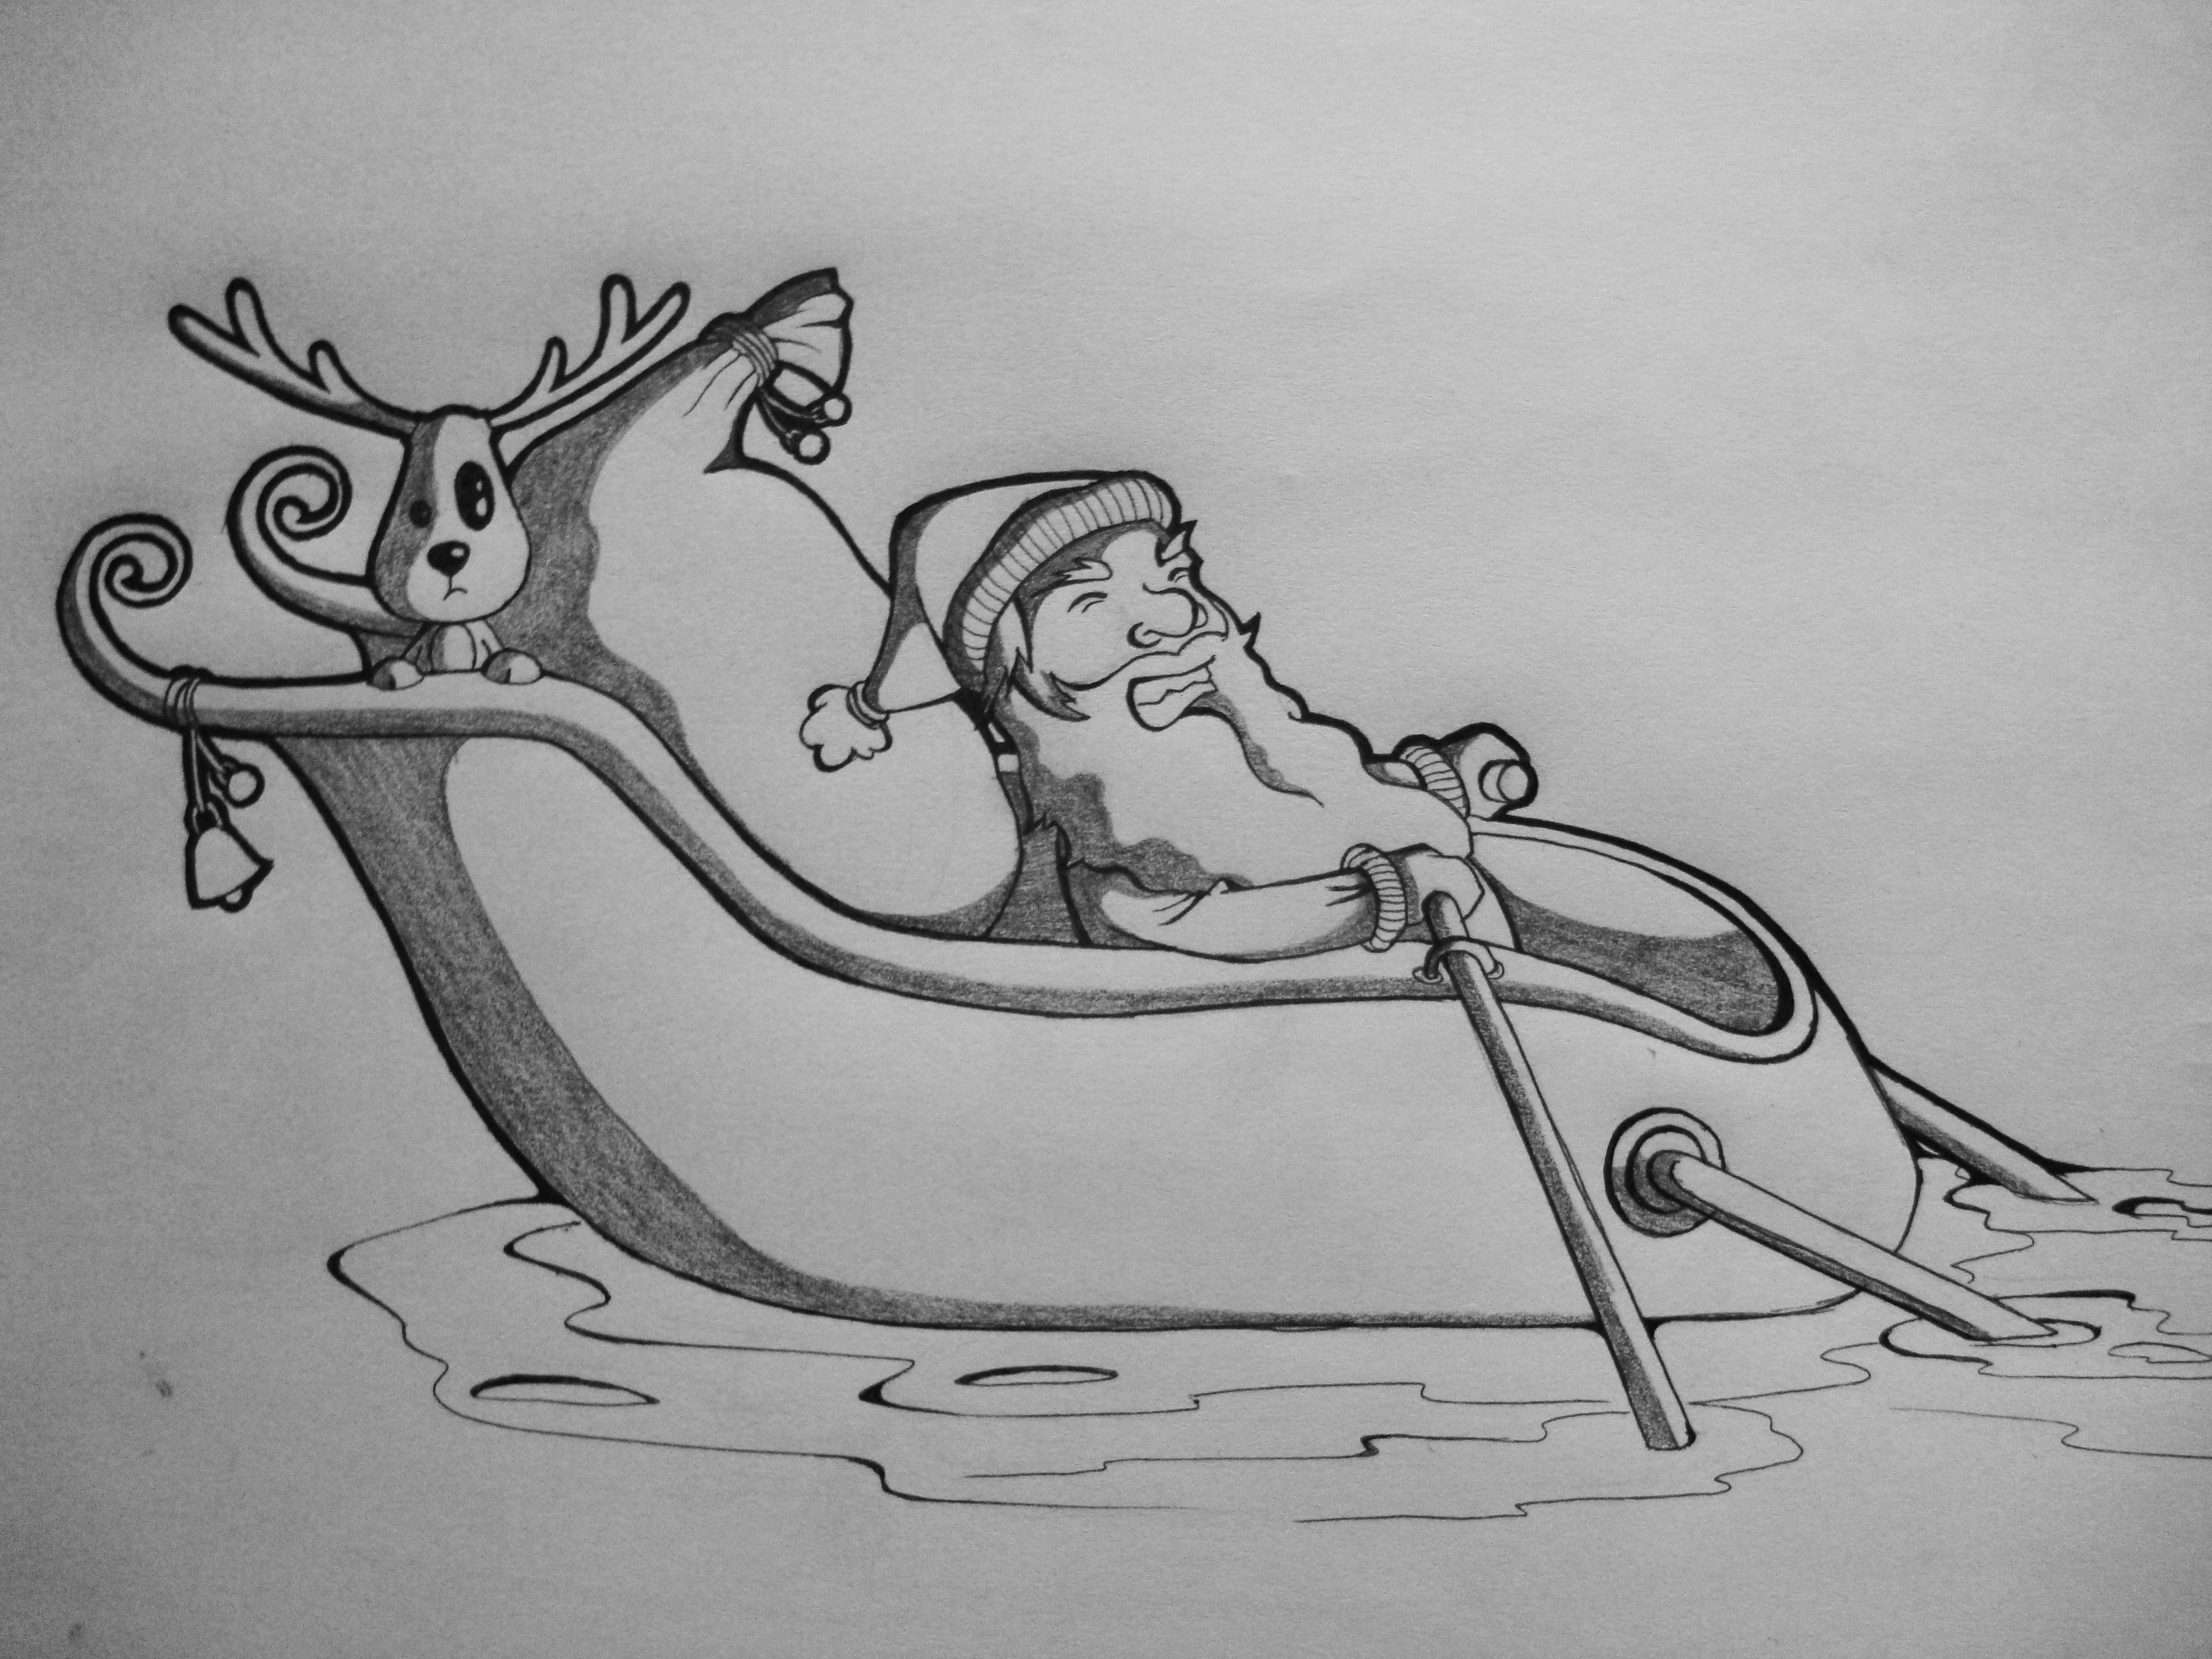 Christmas Drawing.Stop Global Warming Picture By Lky For Christmas